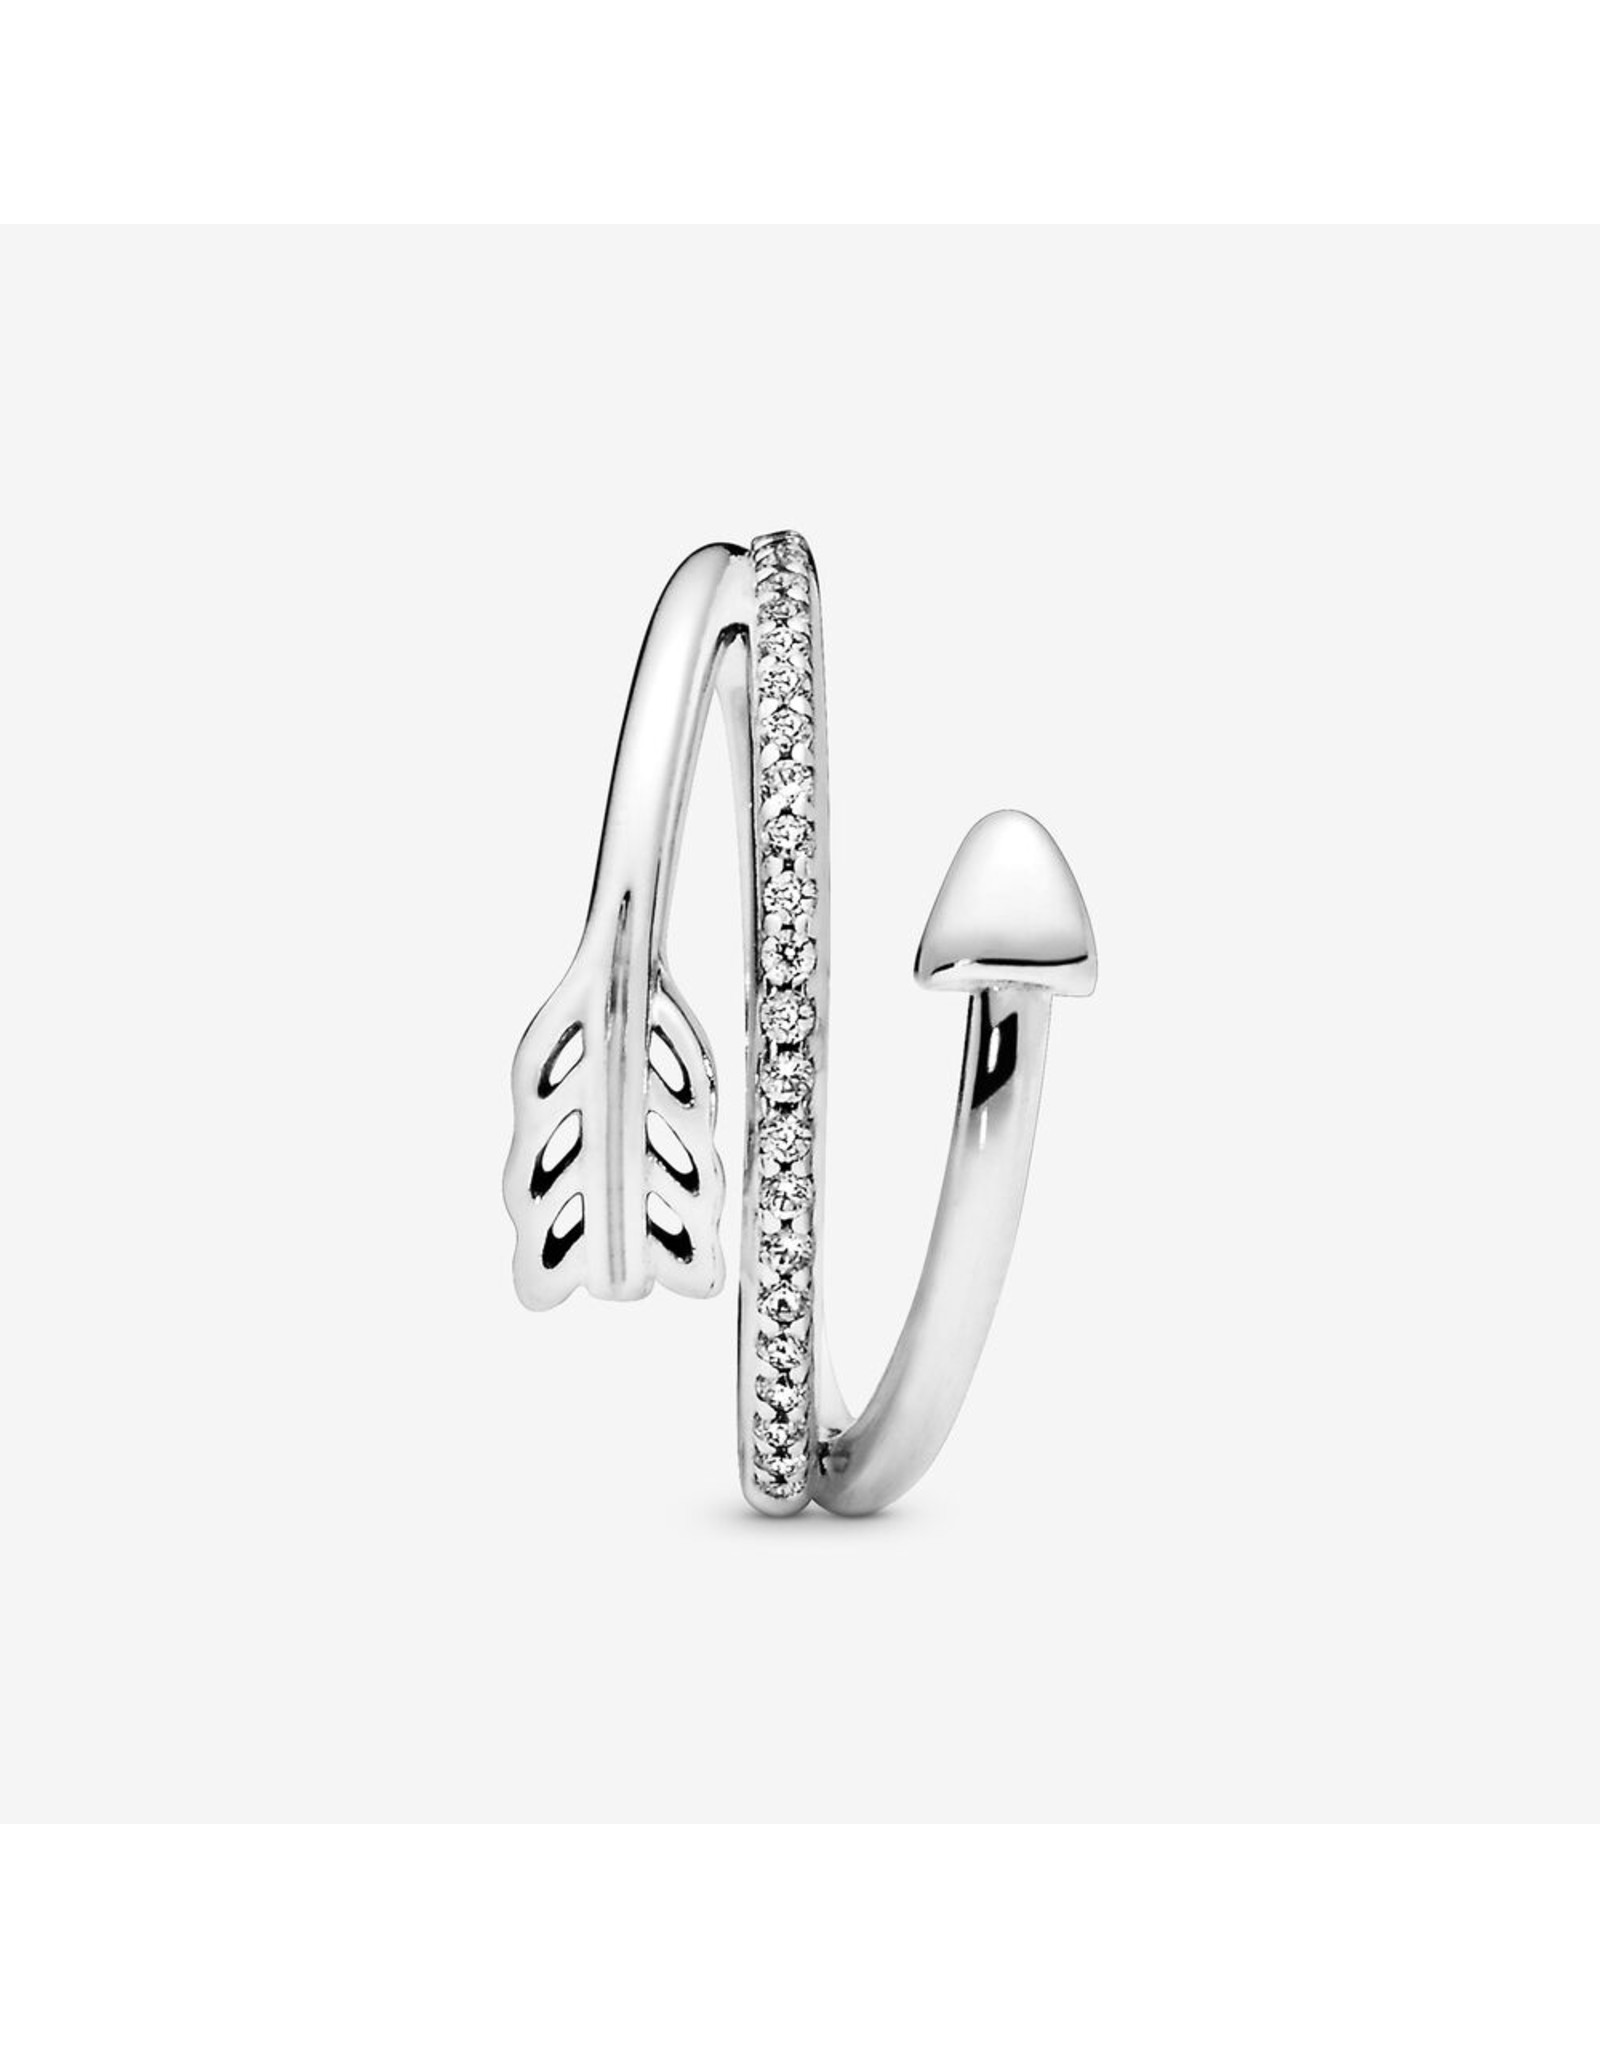 Pandora Pandora Ring,197830CZ, Wrap Around Arrow